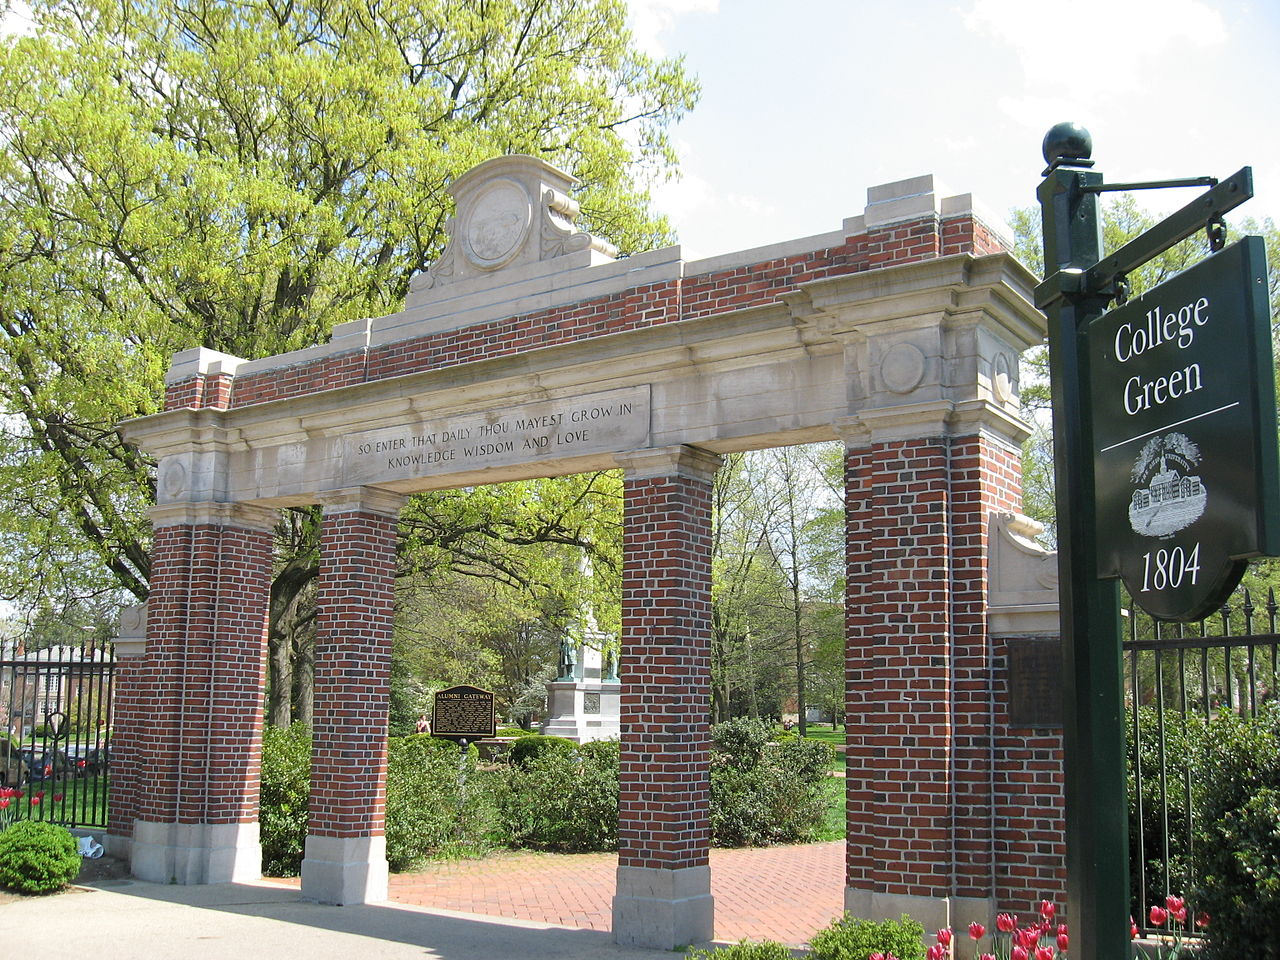 Class Gateway at Ohio University - Courtesy Ed via Wikimedia Commons - CC-BY-SA-3.0